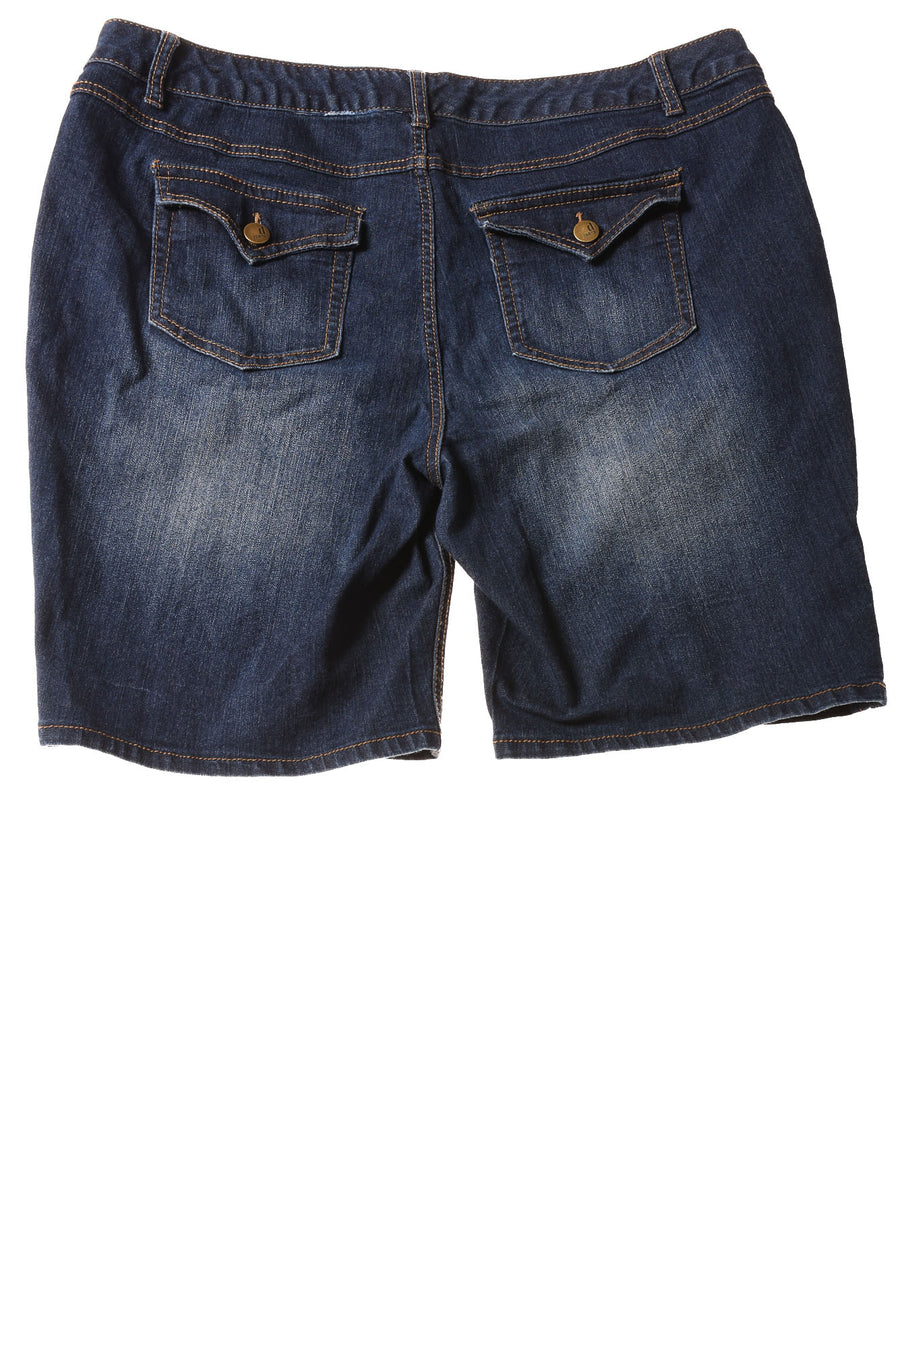 USED D. Jeans Women's Shorts 20 Blue